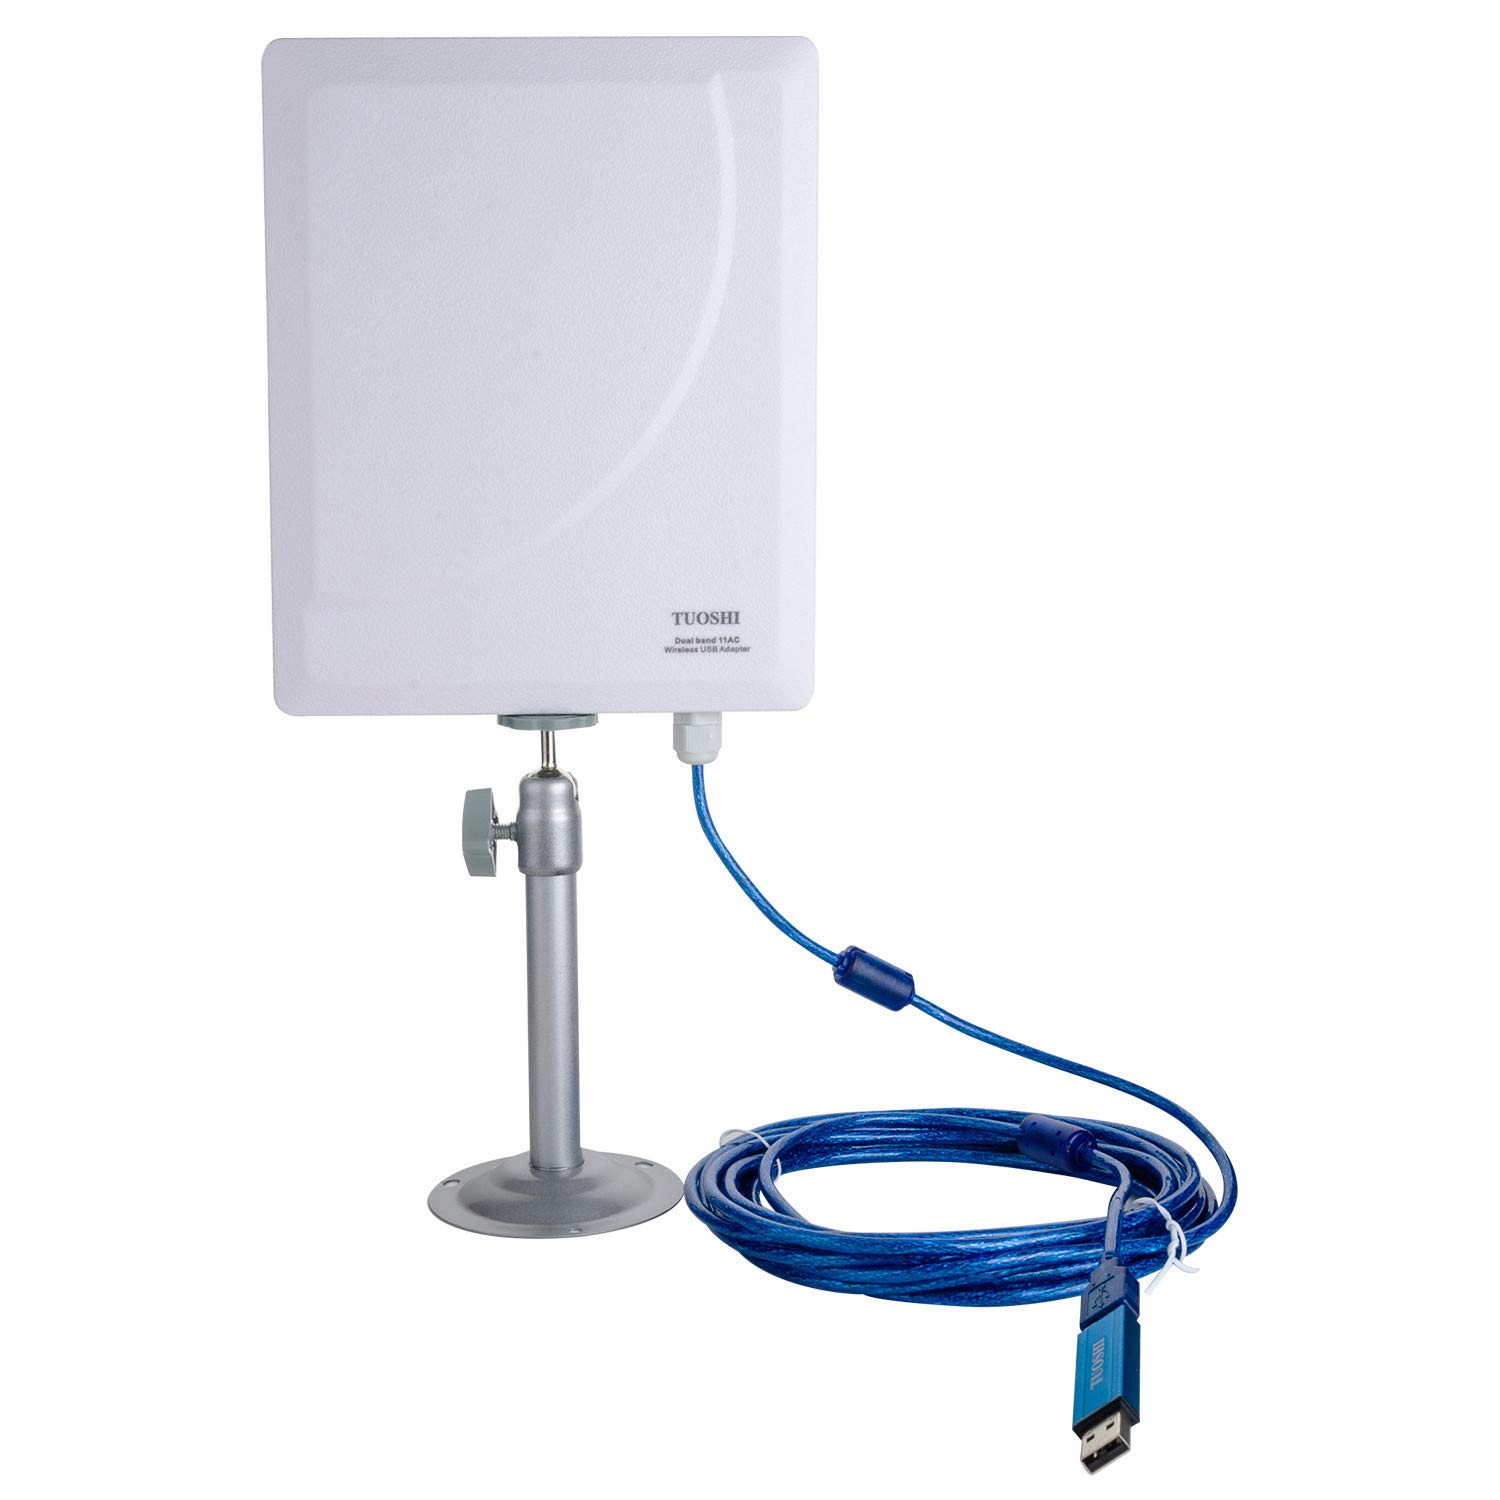 TUOSHI Outdoor High Gain Wi-Fi Antenna | Long Range USB Wi-Fi Extender Antenna for PCs | Support 600Mbps AC 802.11ac Dual Band 2.4 & 5 GHz